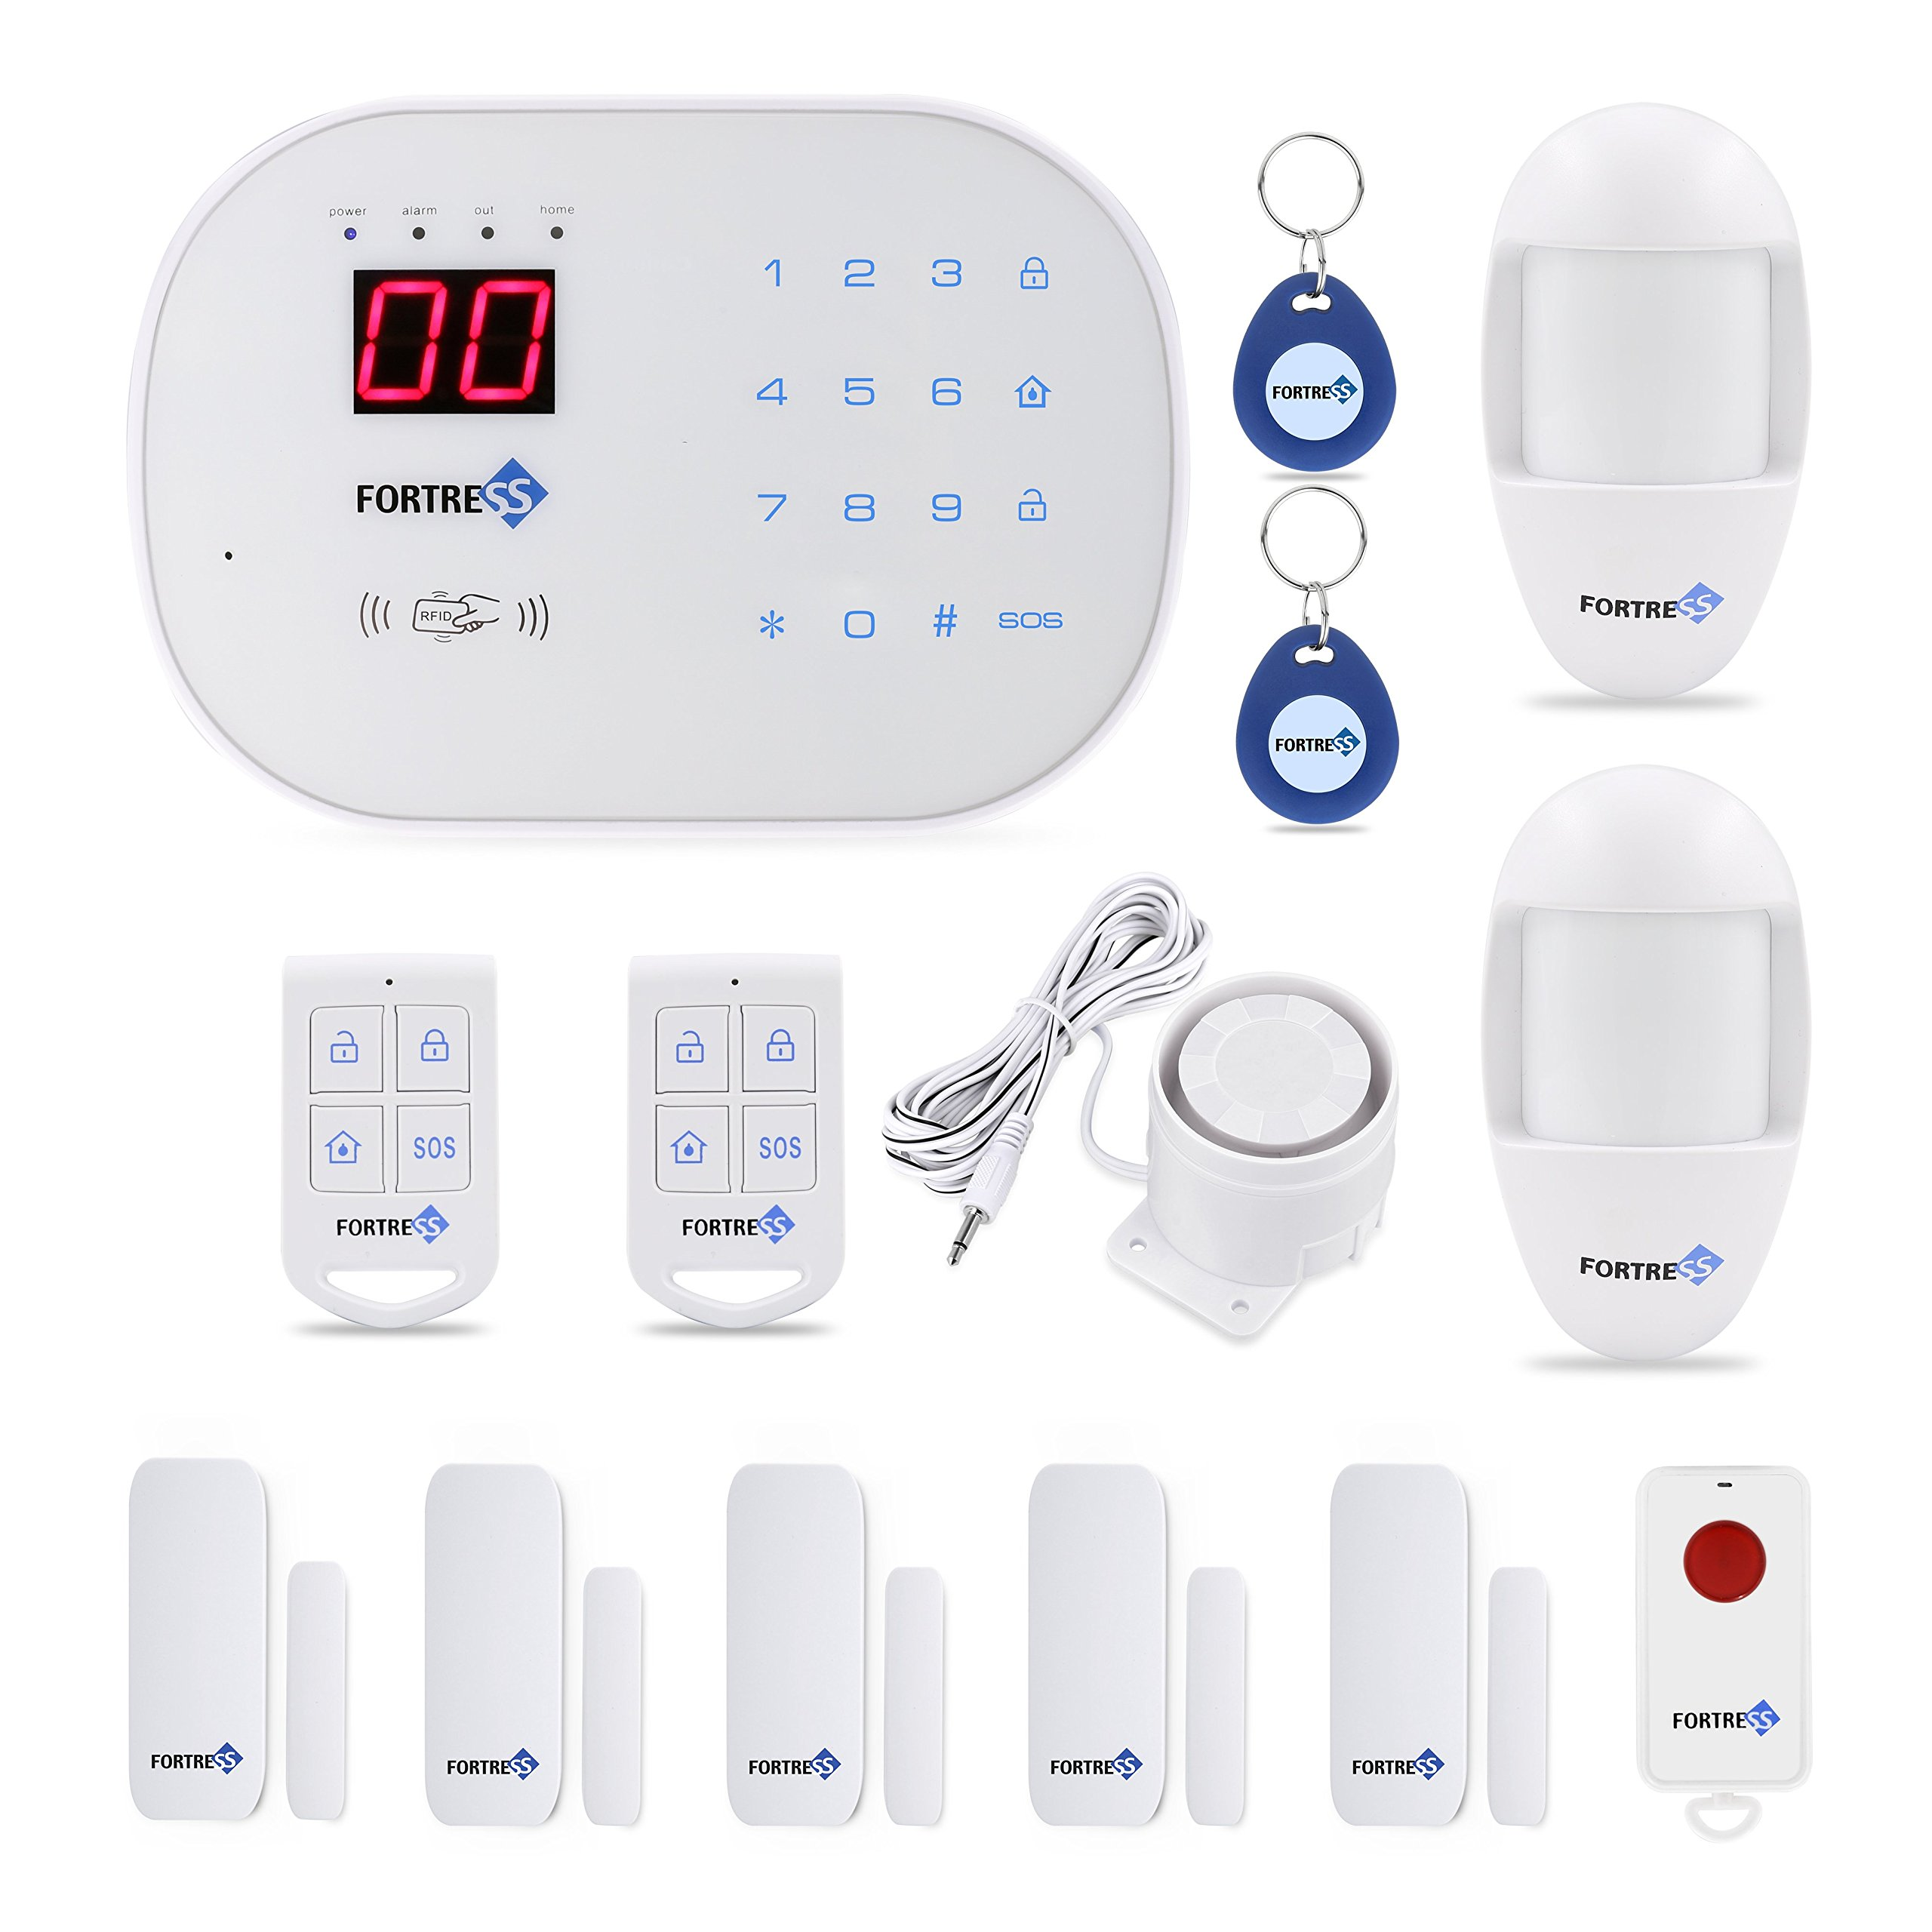 Fortress Security Store (TM) S03-A Wireless Home and Business Security Alarm System DIY Kit with Auto Dial, Motion Detectors, Panic Button and More for Complete Security